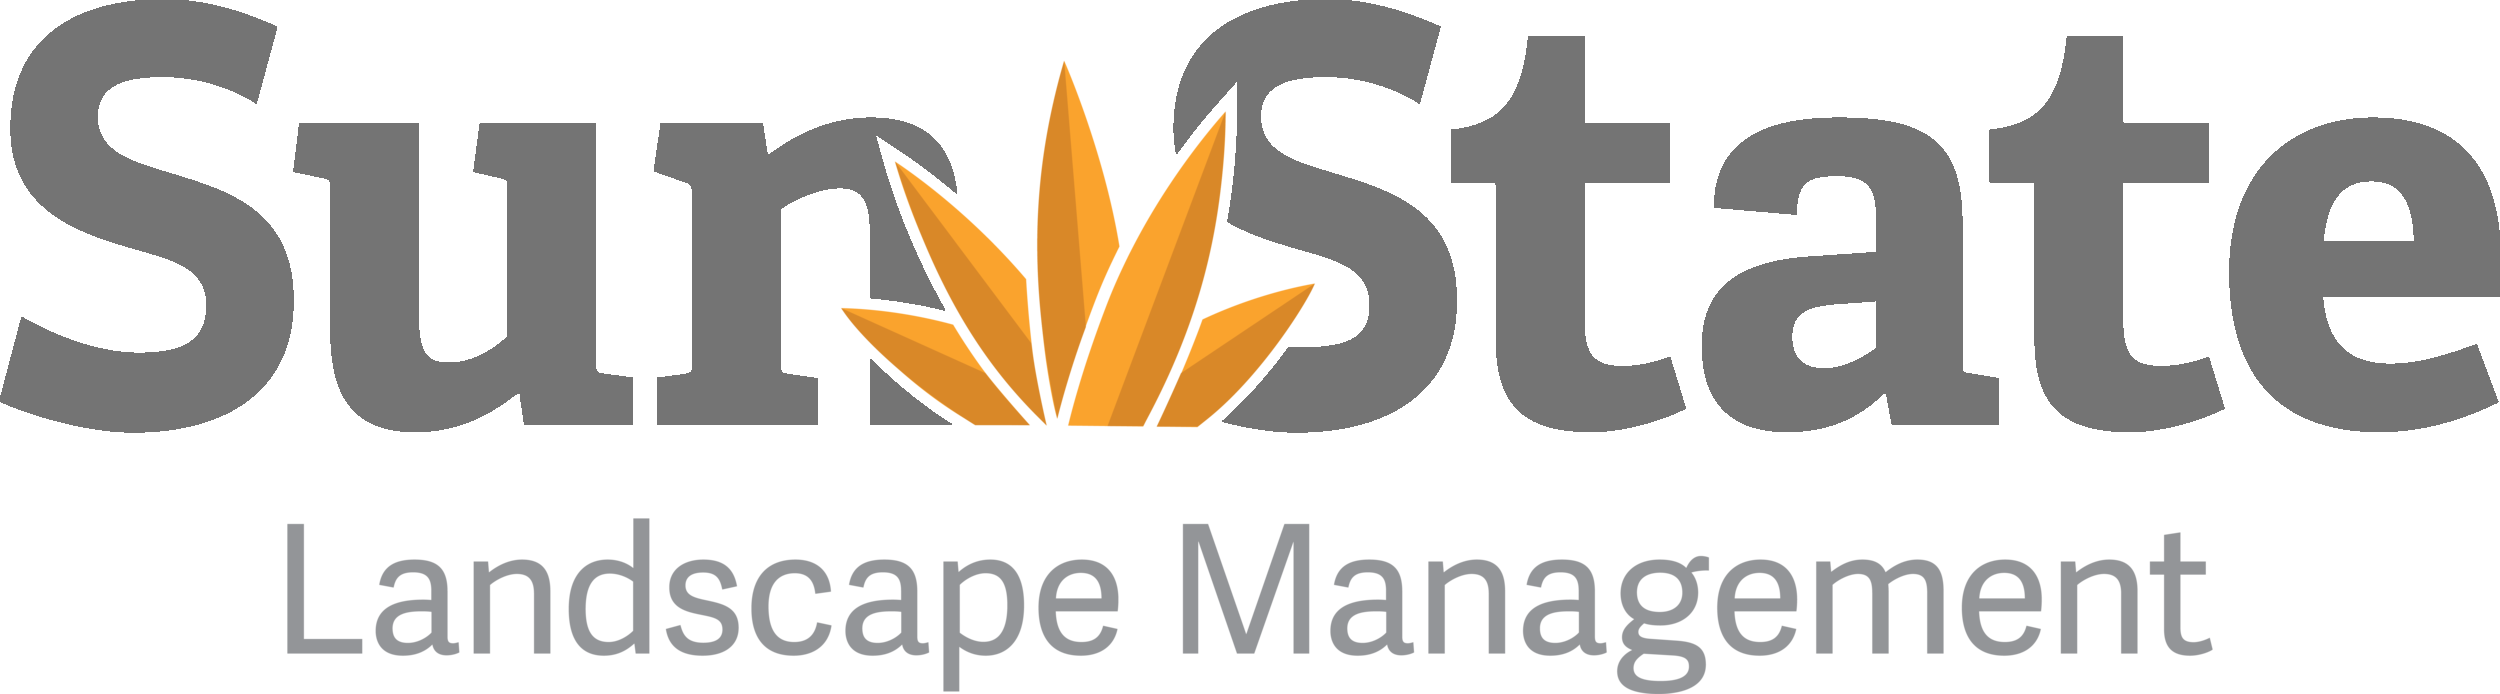 Sun State - Arizona's #1 Commercial Landscape Management Company